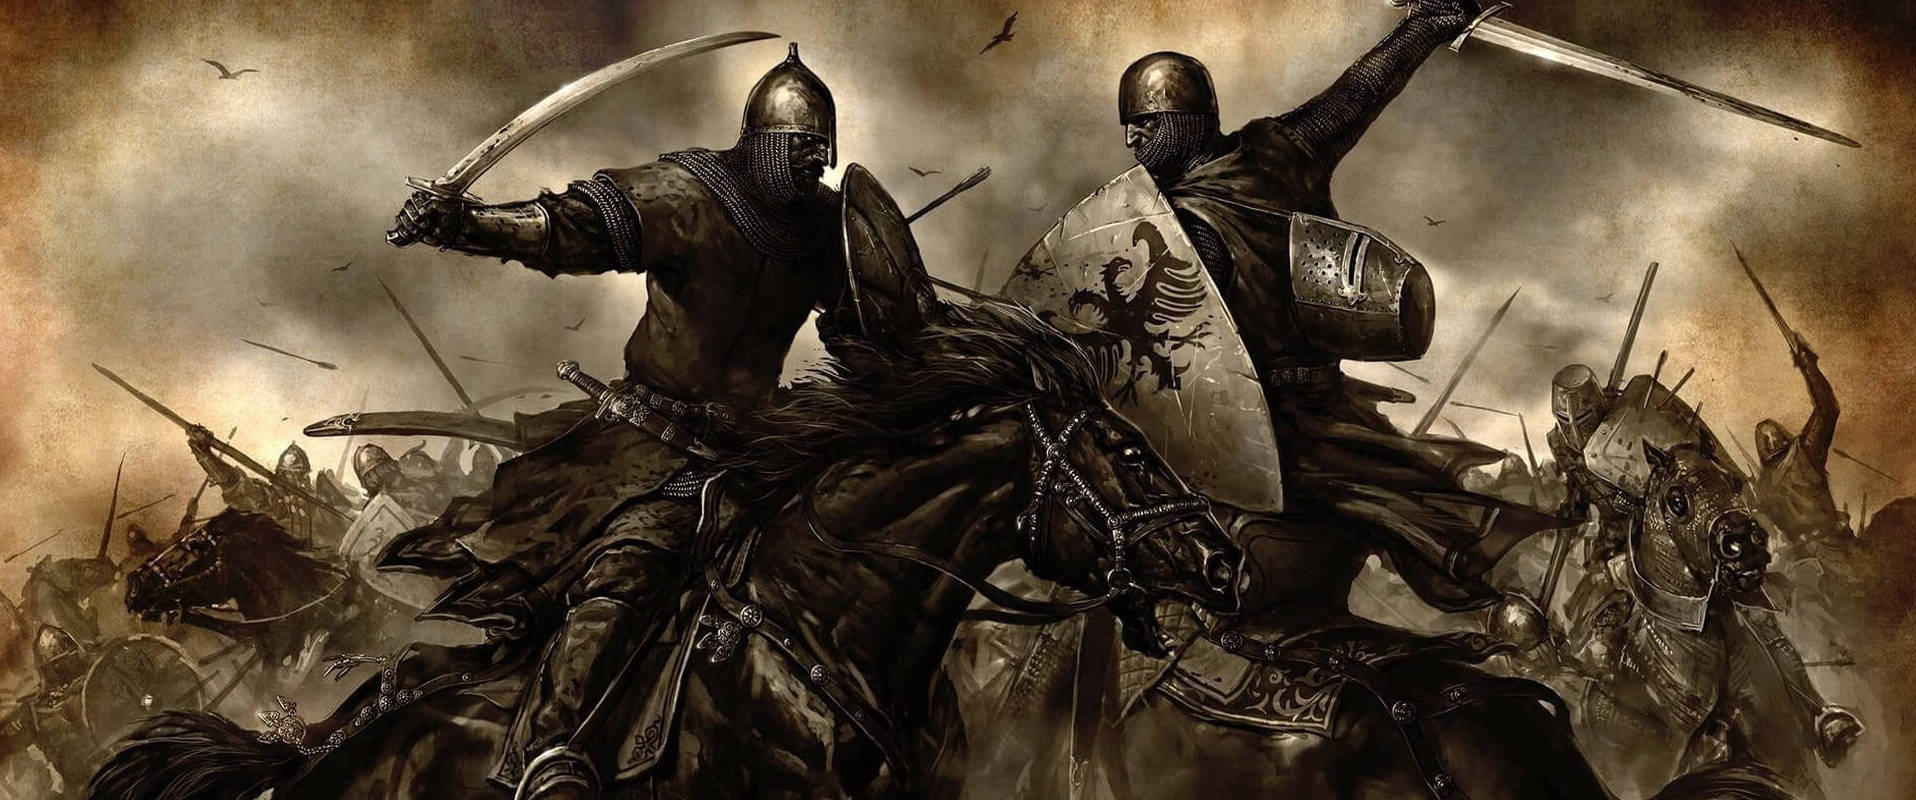 Mount & Blade: Warband Steam Key GLOBAL